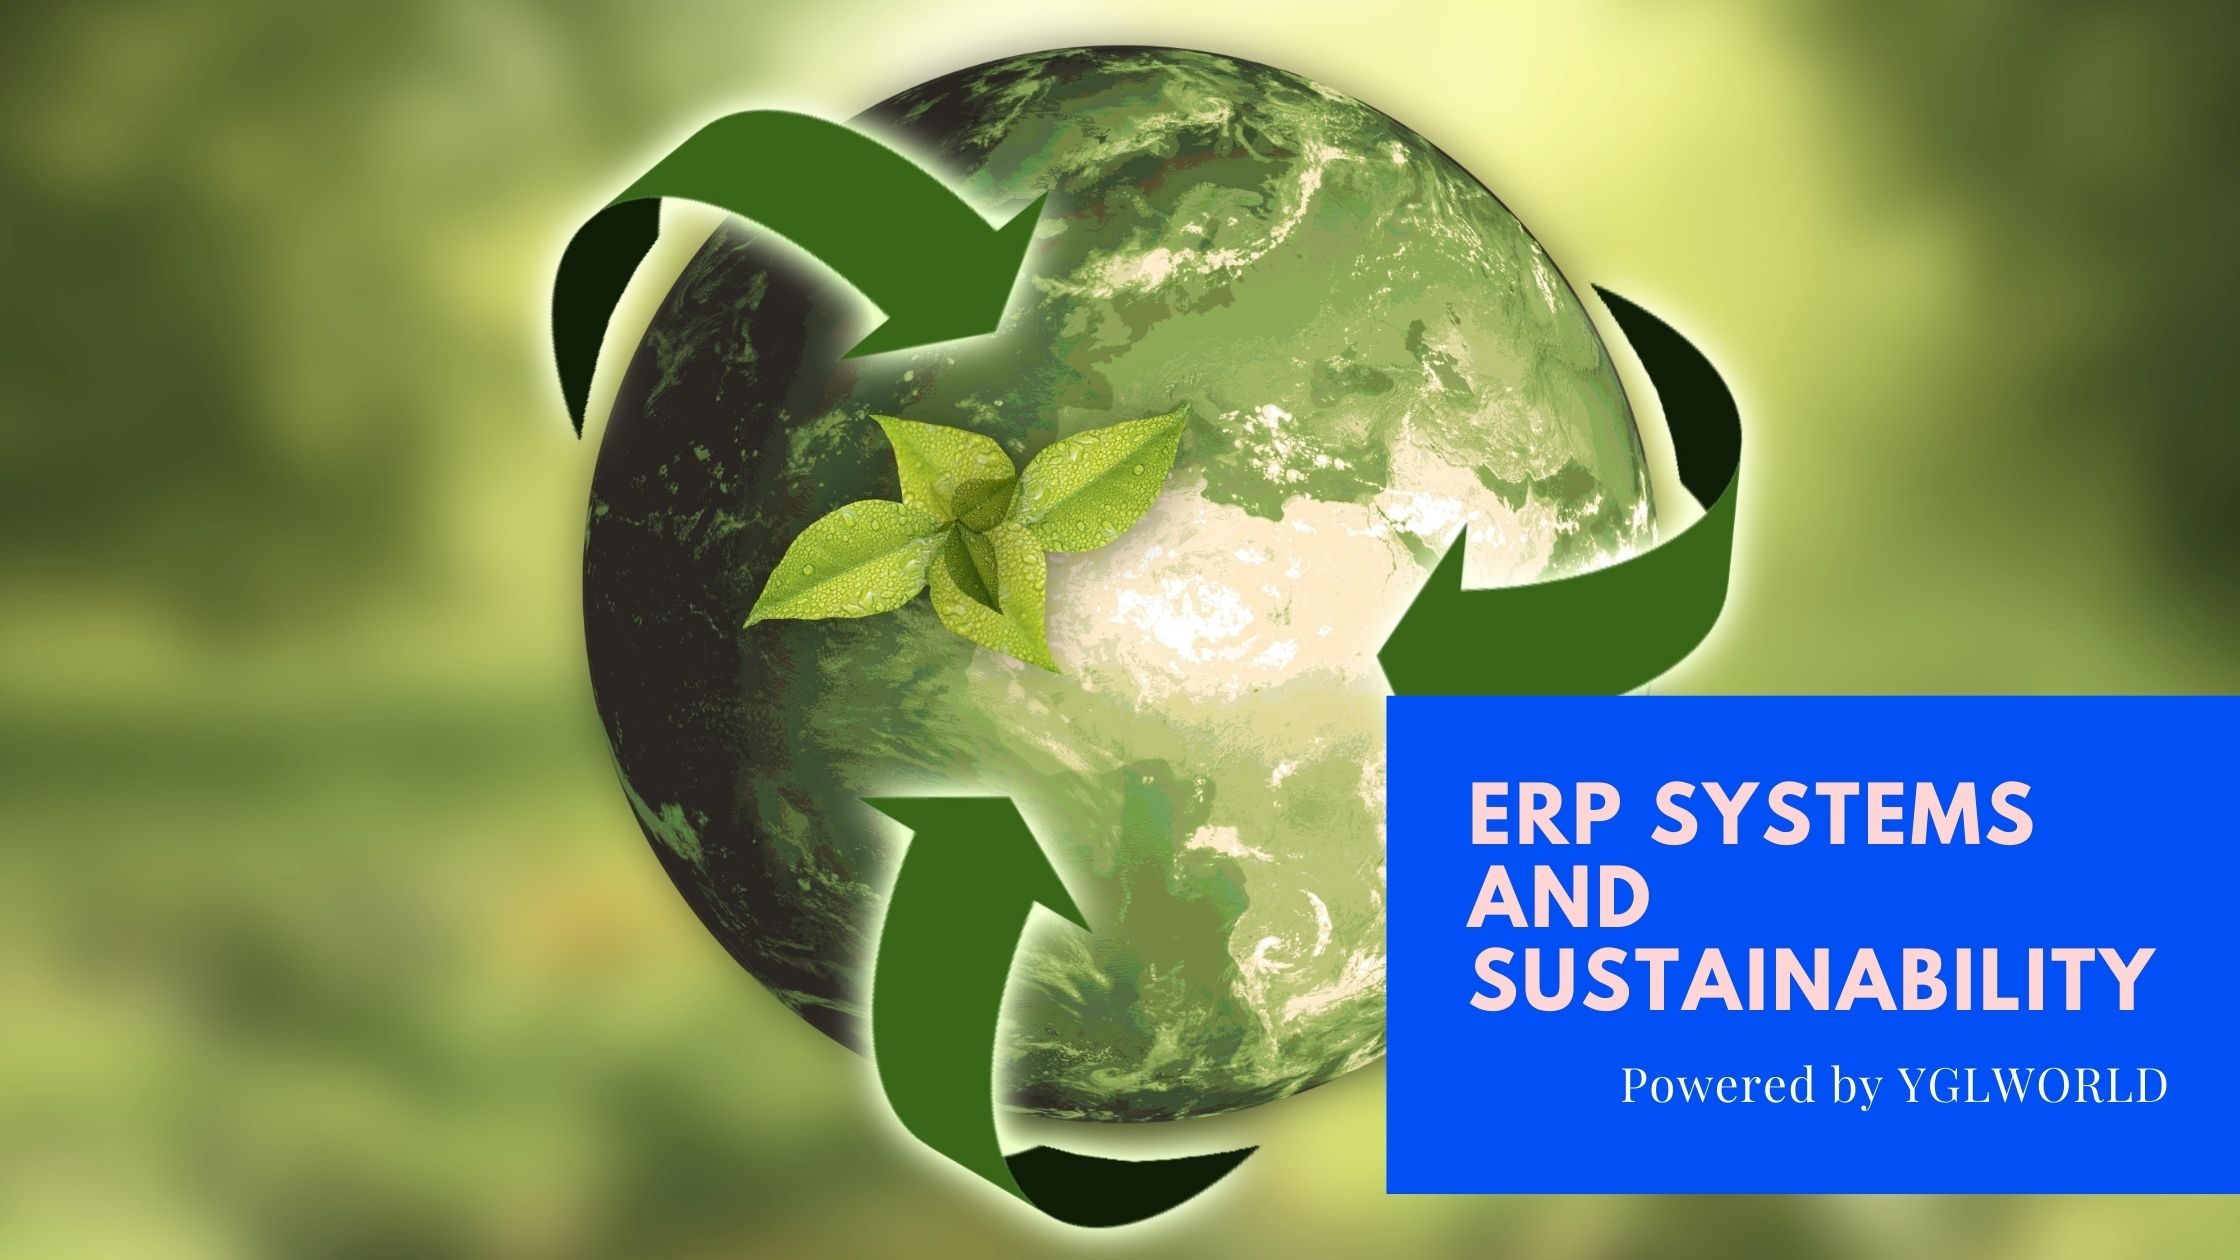 ERP Systems and Sustainability | Enterprise Resource Planning (ERP) and Sustainability